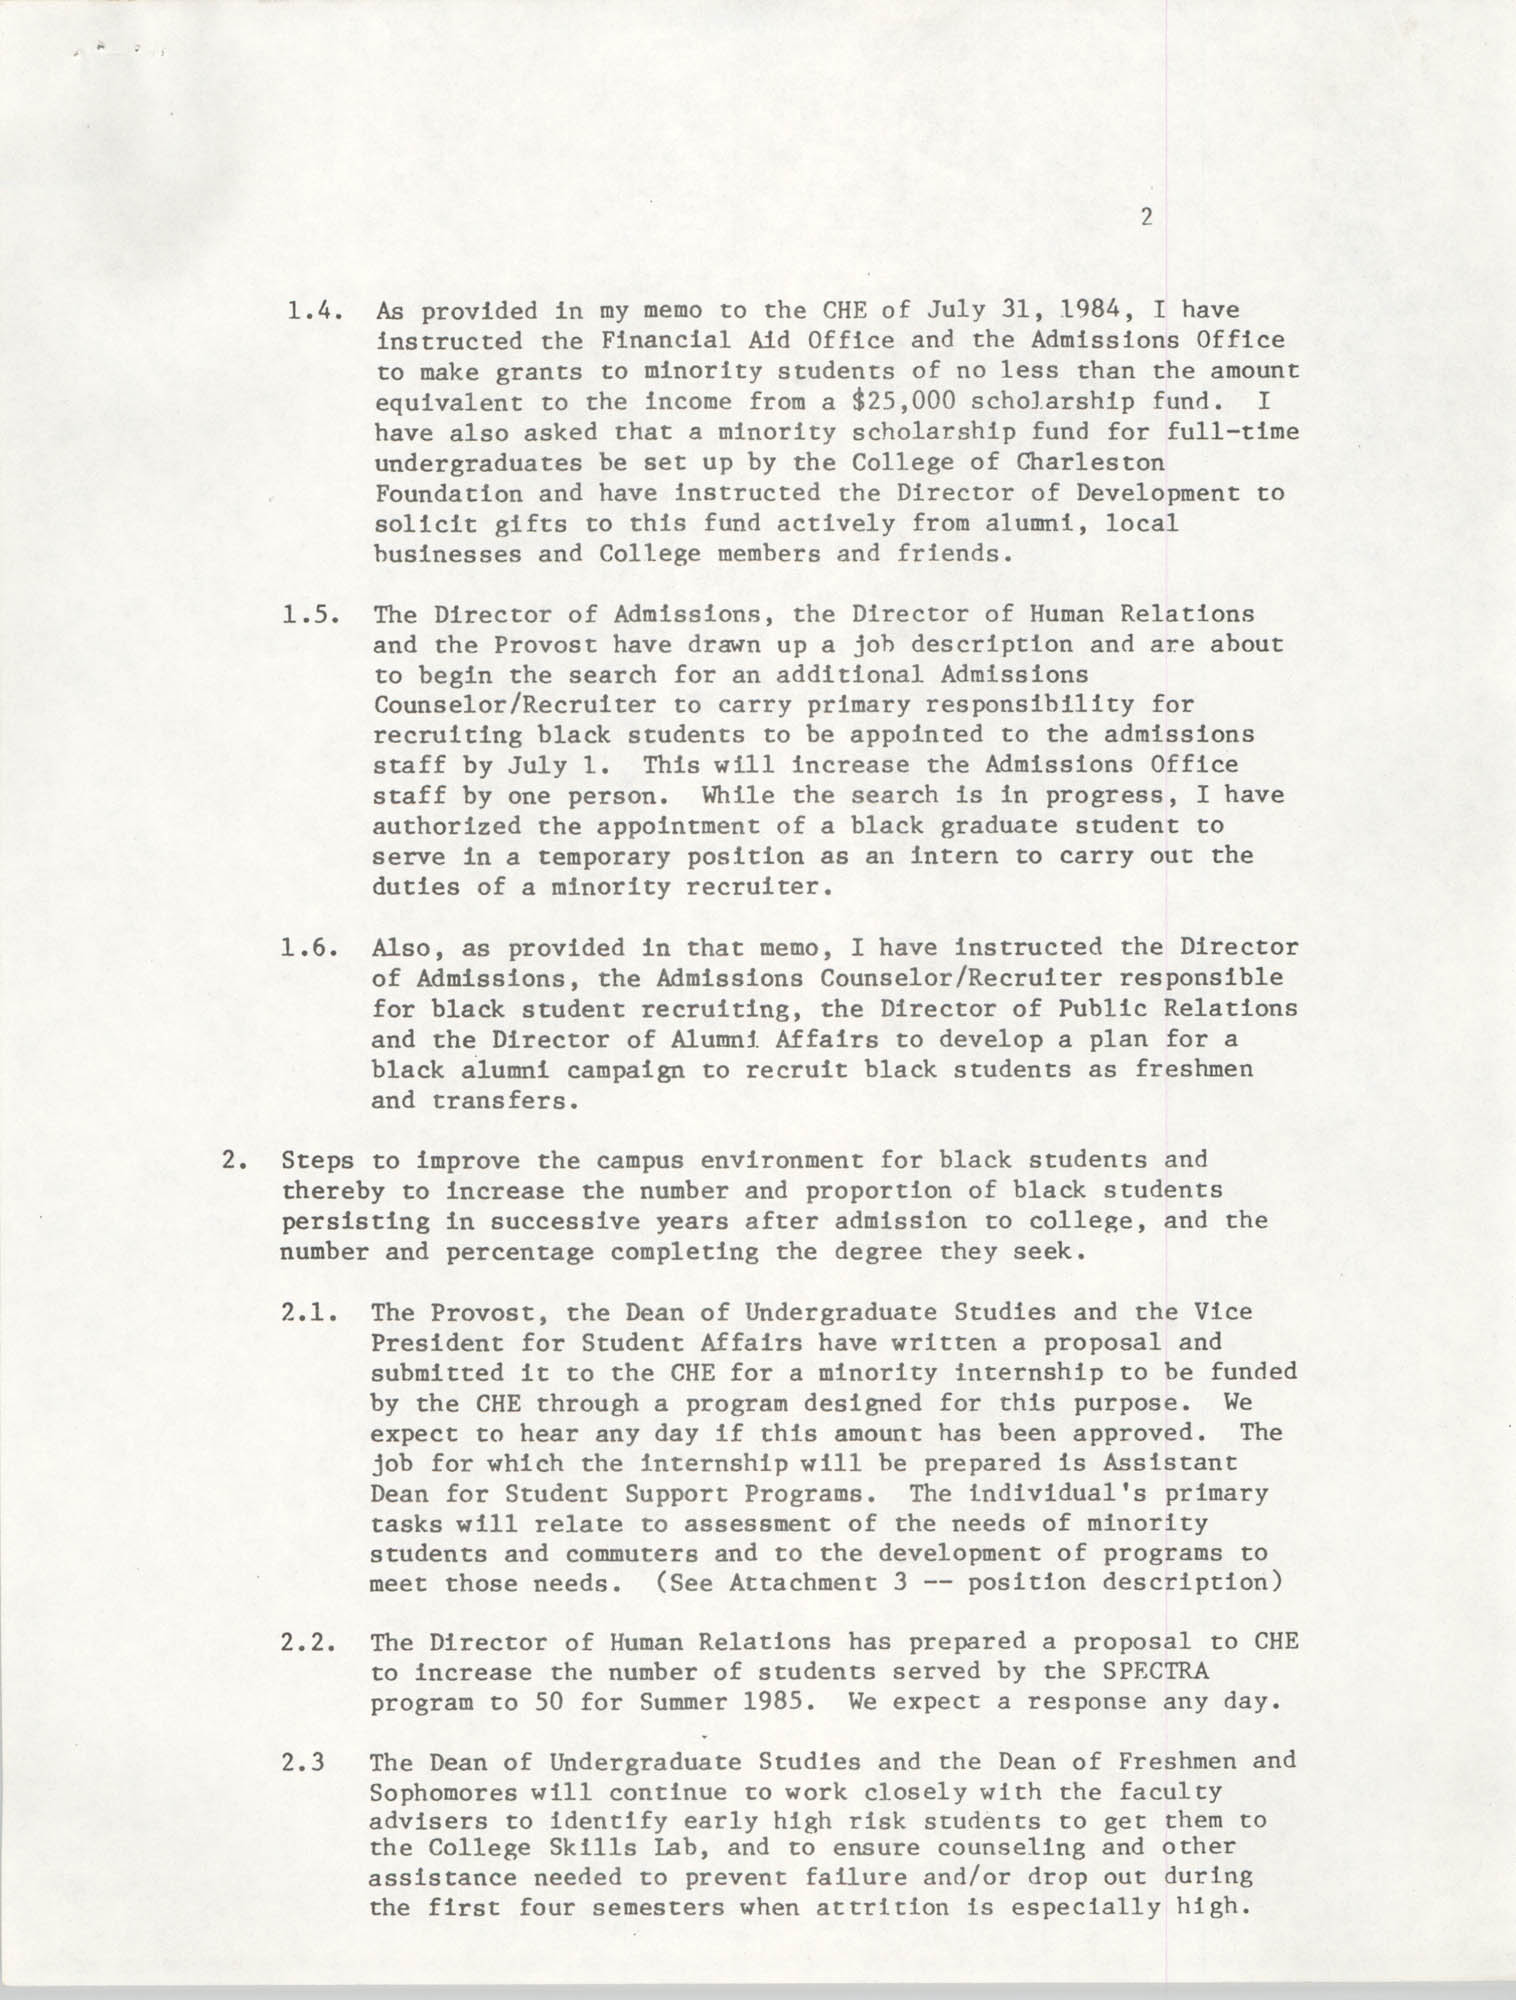 College of Charleston, Updated Summary of Desegregation Efforts, Page 2